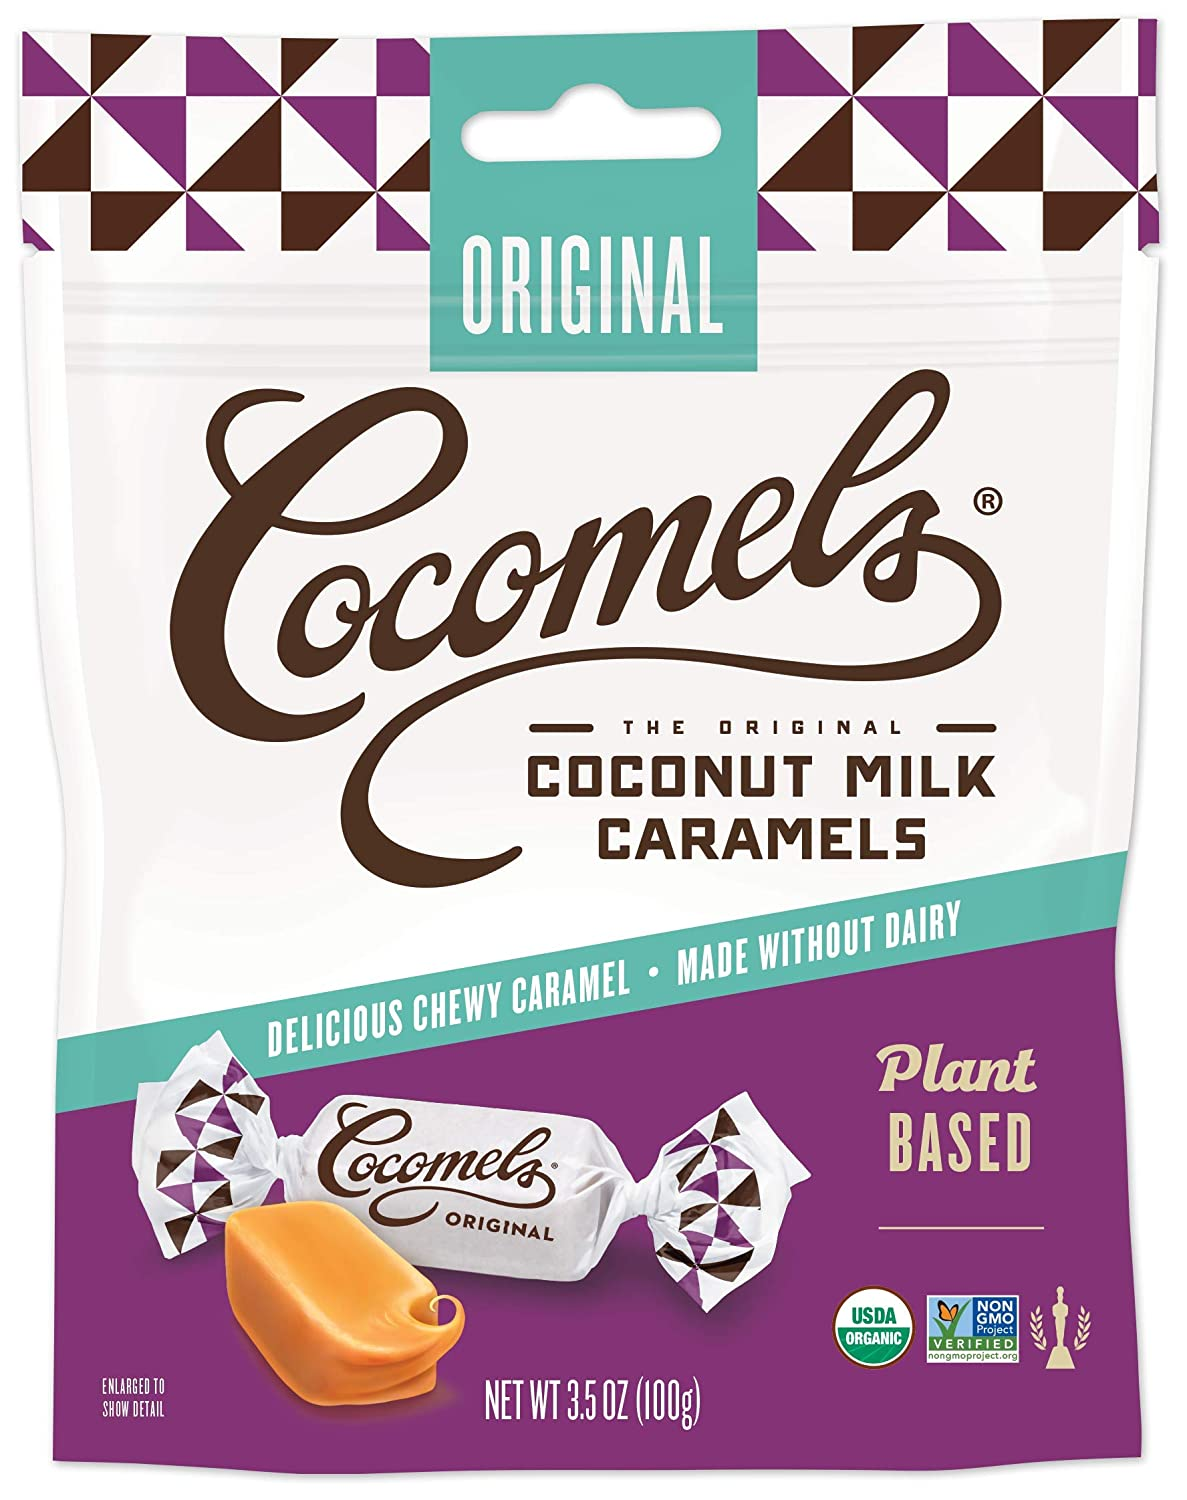 Cocomels Coconut Milk Caramels, Original Flavor, Organic Candy, Dairy Free, Vegan, Gluten Free, Non-GMO, No High Fructose Corn Syrup, Kosher, Plant Based,(1 Pack)